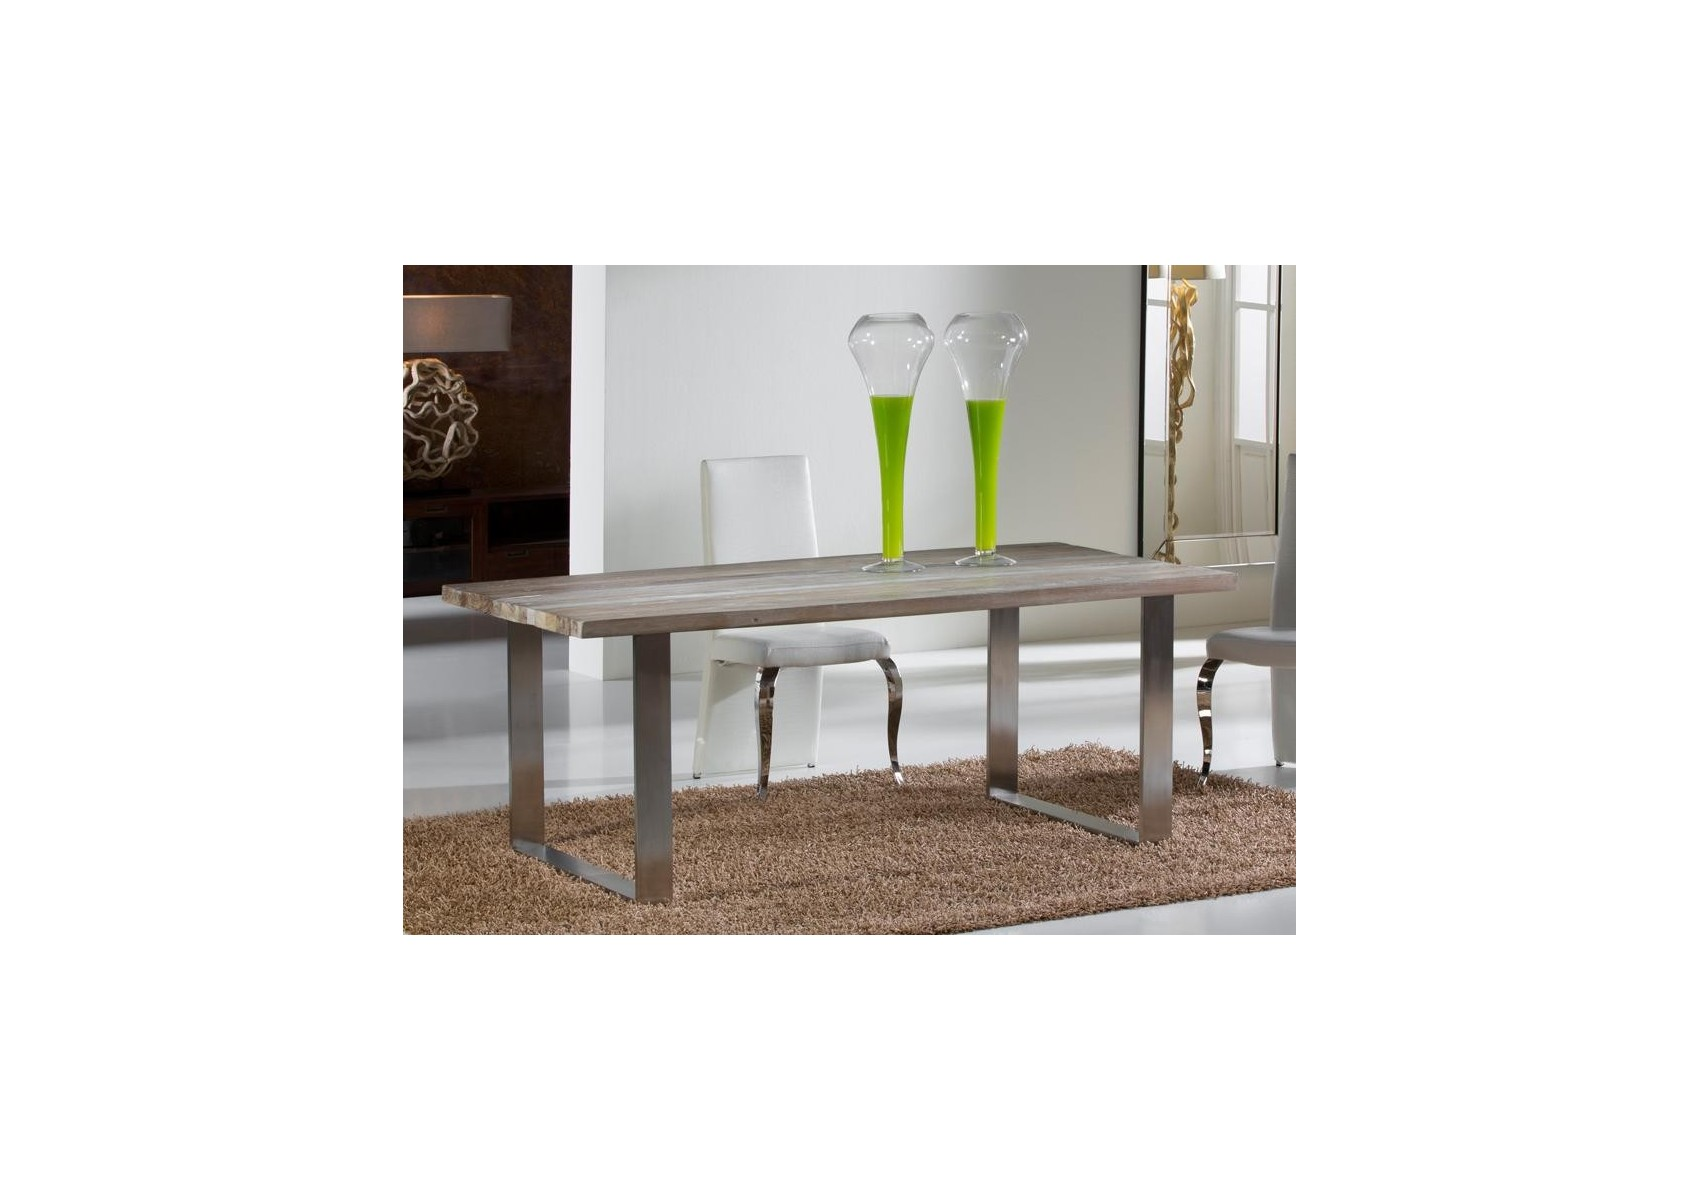 Model de table a manger en bois maison design for Table salle a manger bois brut